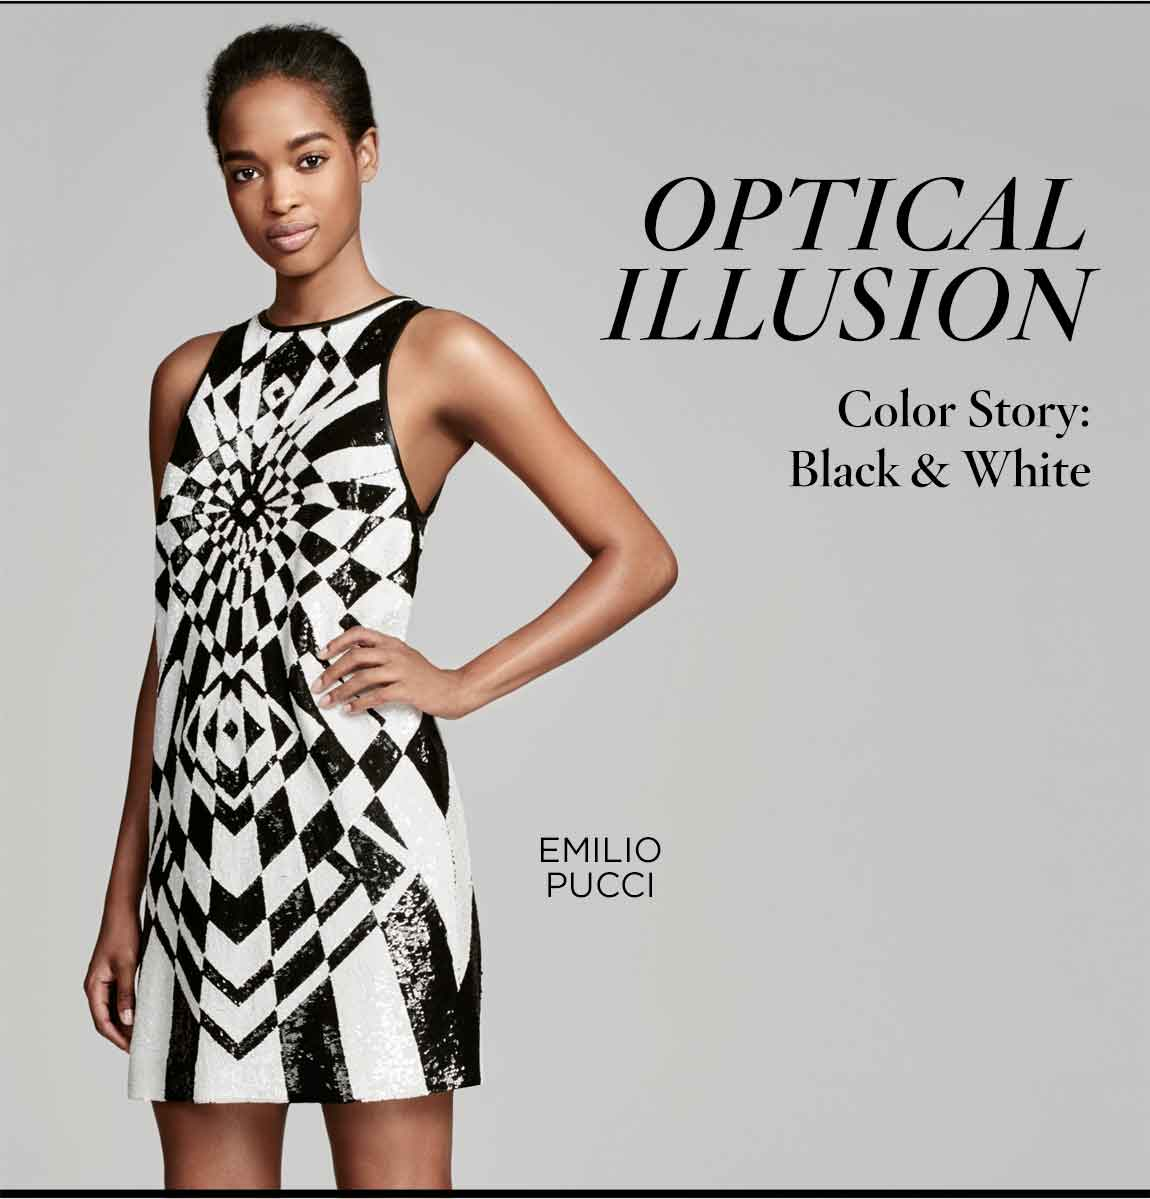 Color Story: Black & White